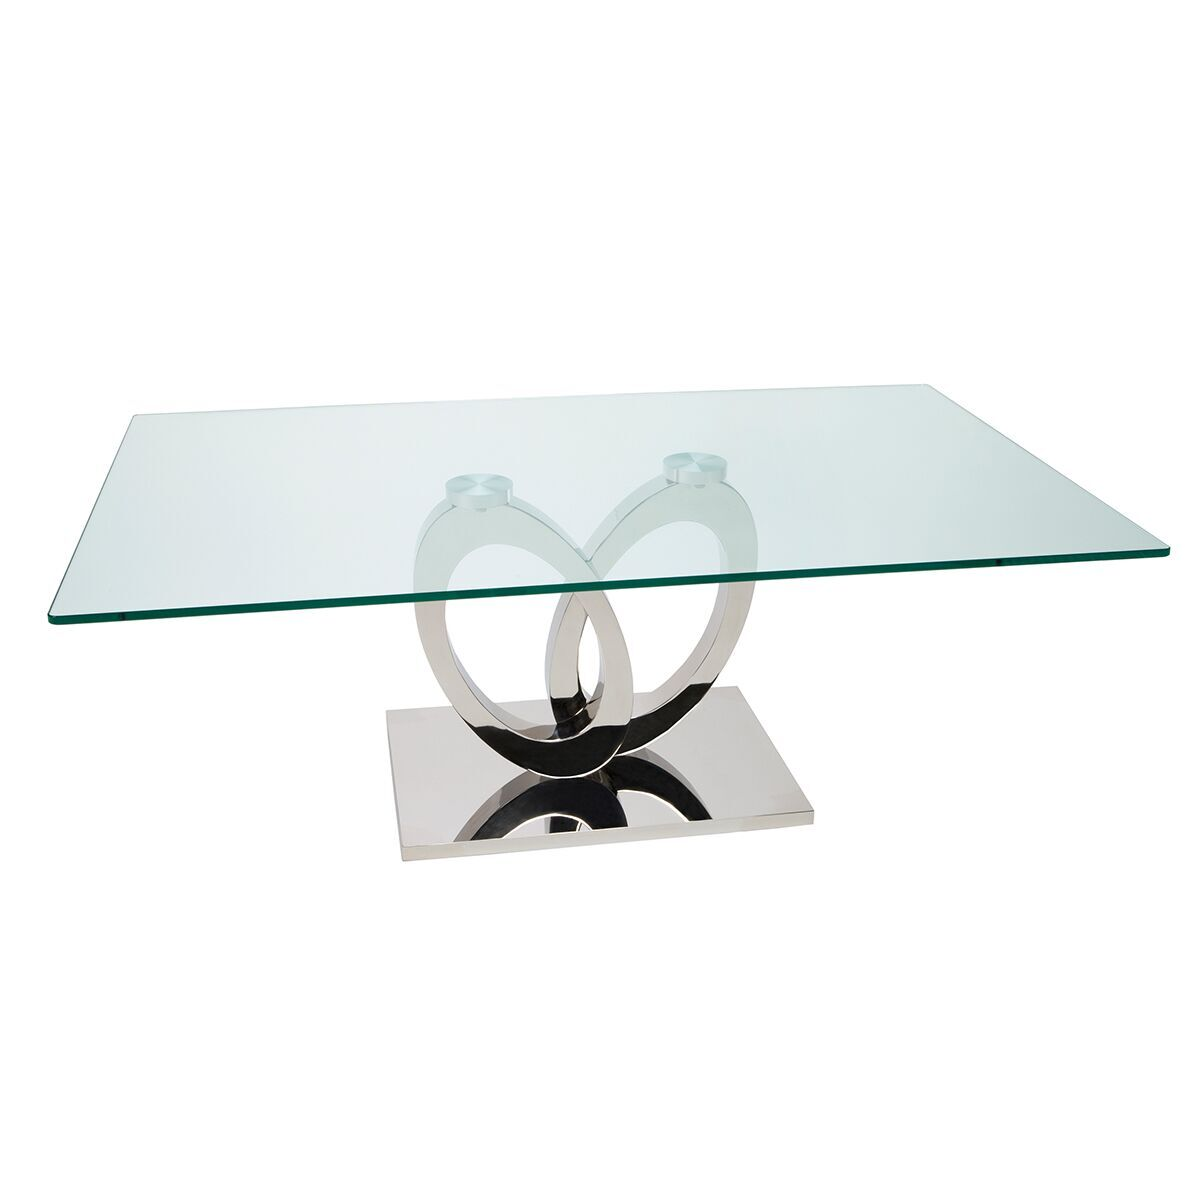 orion coffee table glass stainless steel